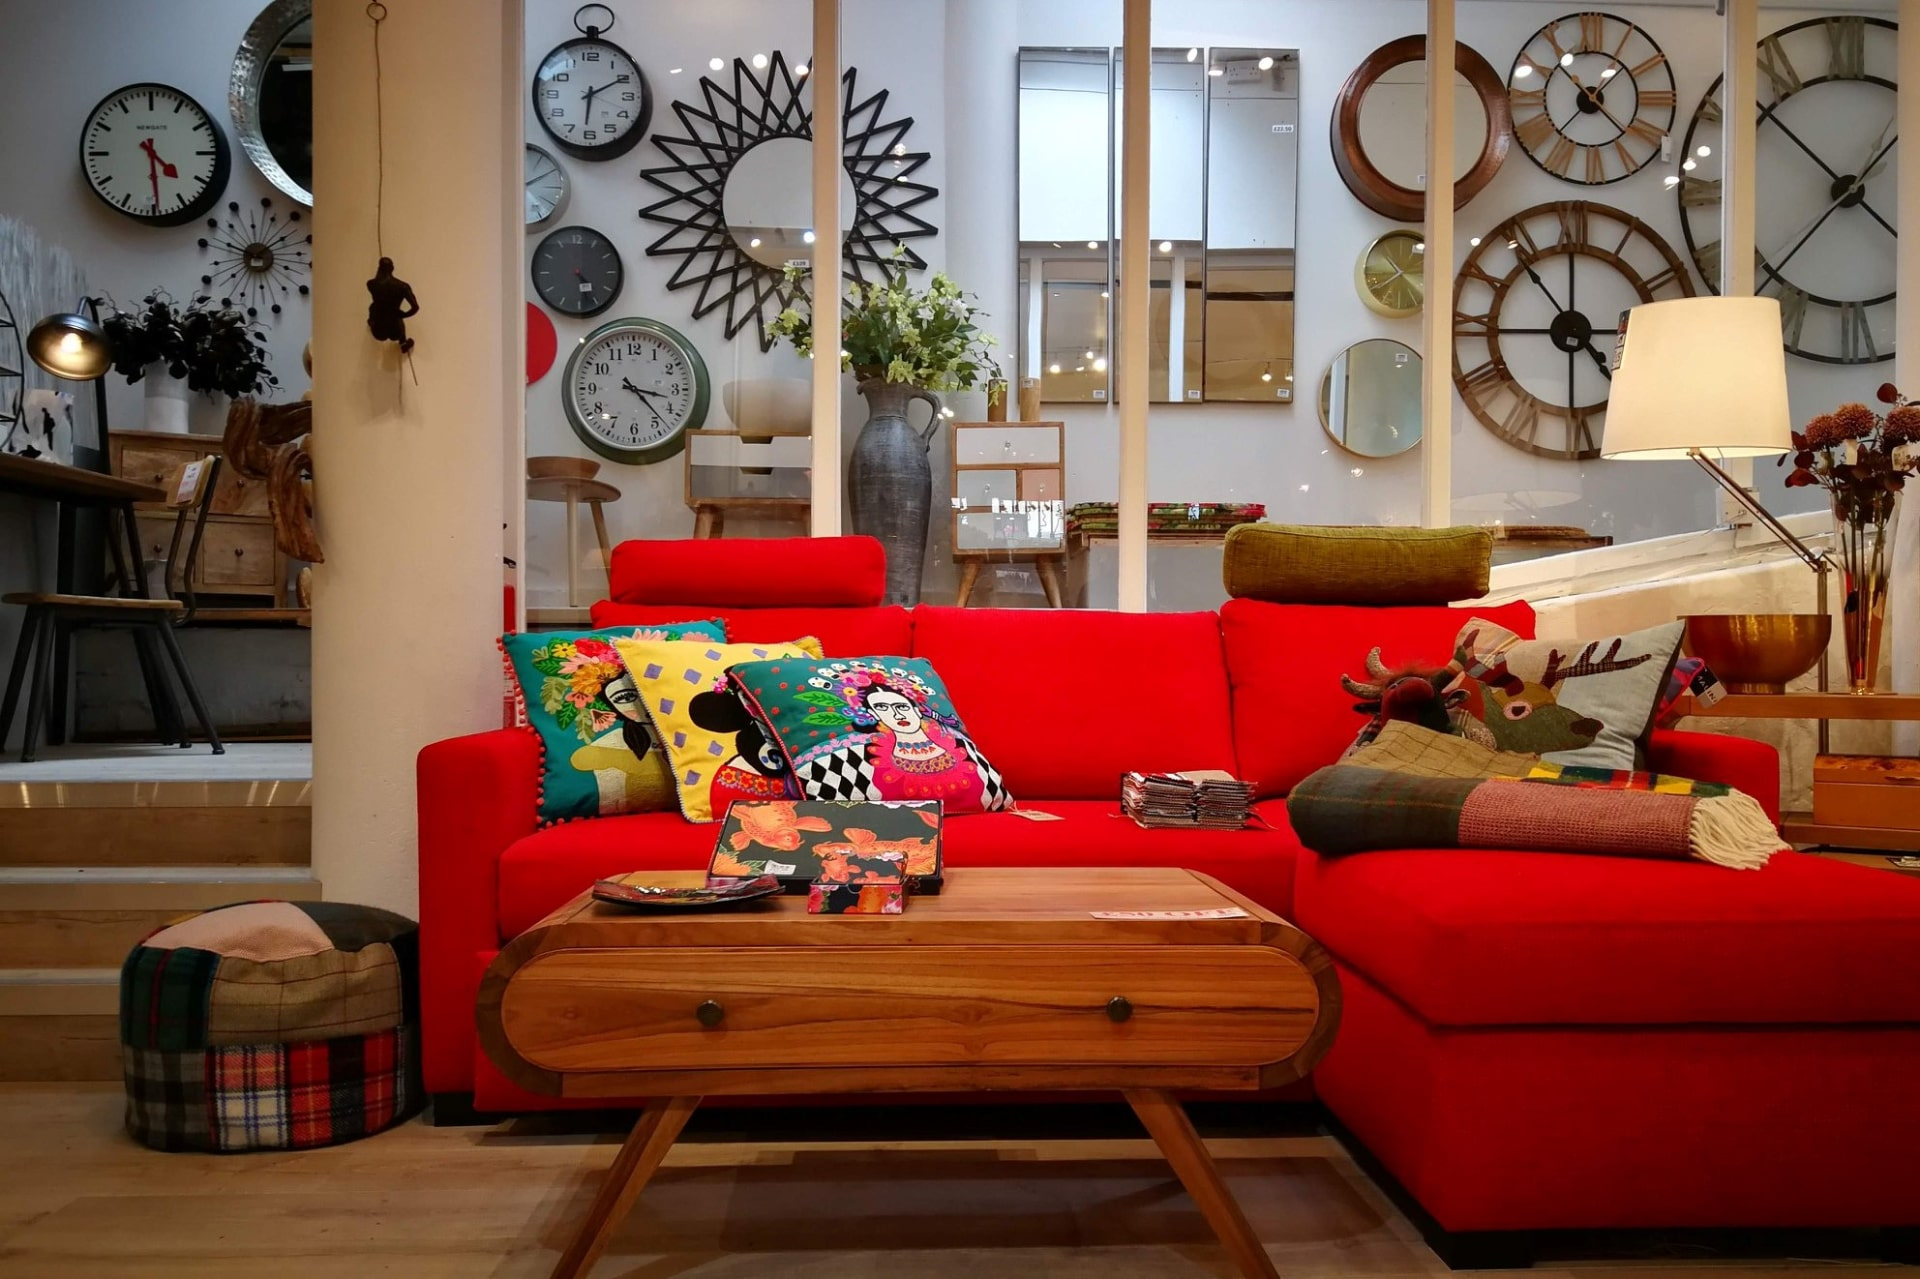 furniture-and-decor-shop-interior-with-red-sofa-and-lots-of-clocks-the-nancy-smillie-shop-byres-road